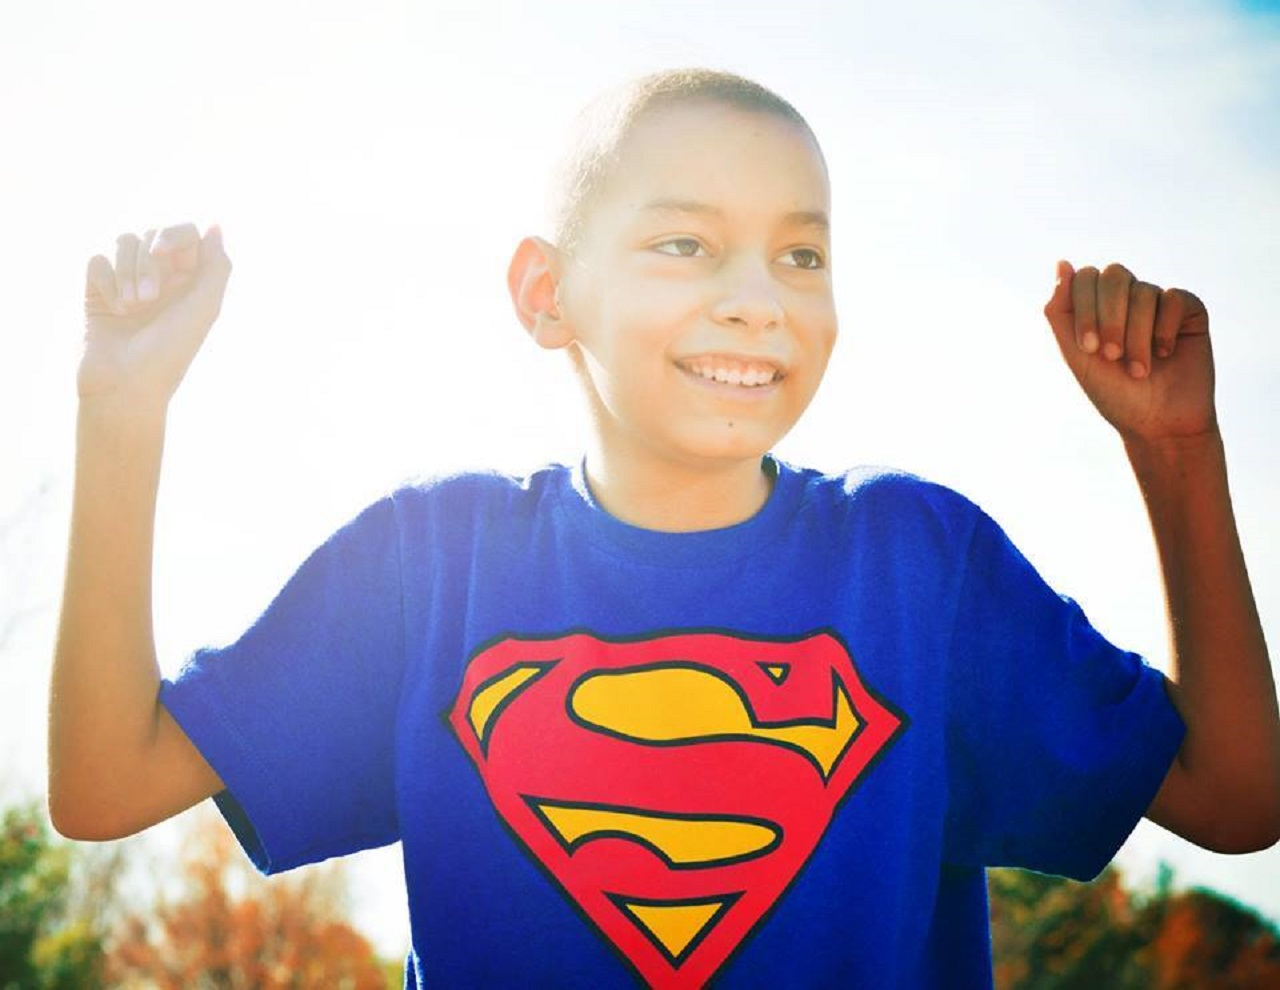 One of Stephanie Smith's photo subjects smiles in a Superman shirt.